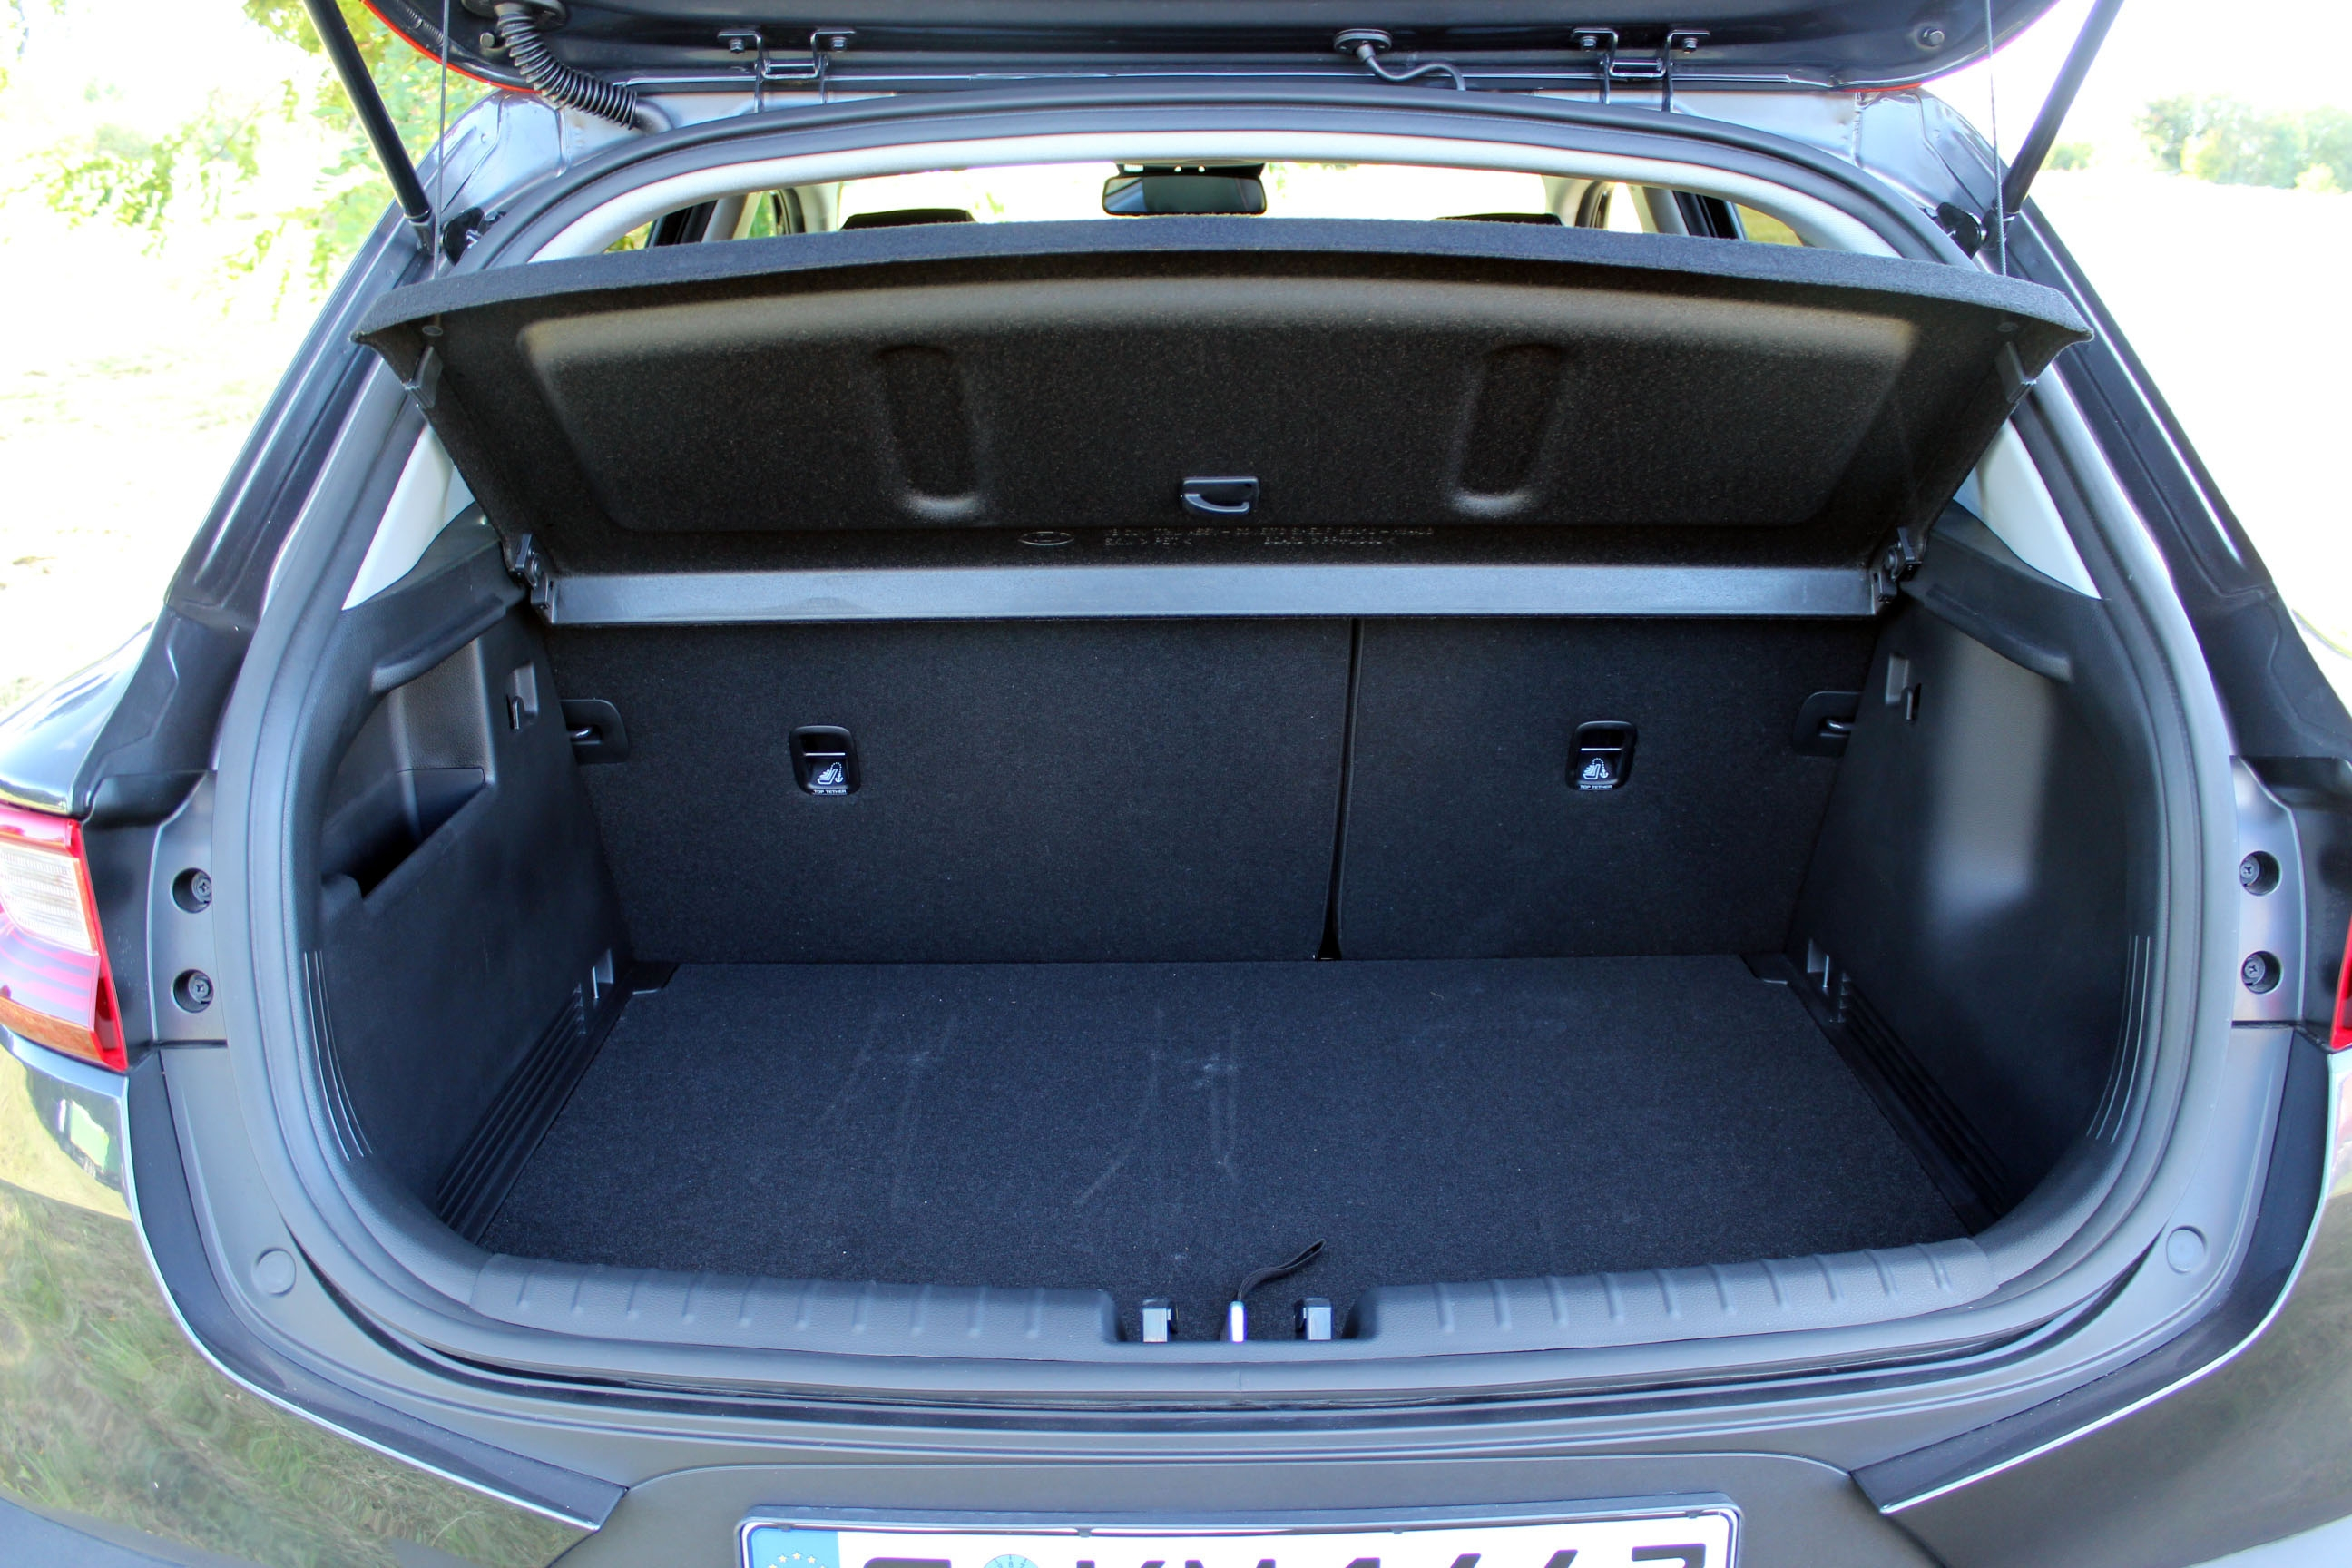 Interieur kia stonic focus sur le design int rieur kia for Interieur kia stonic